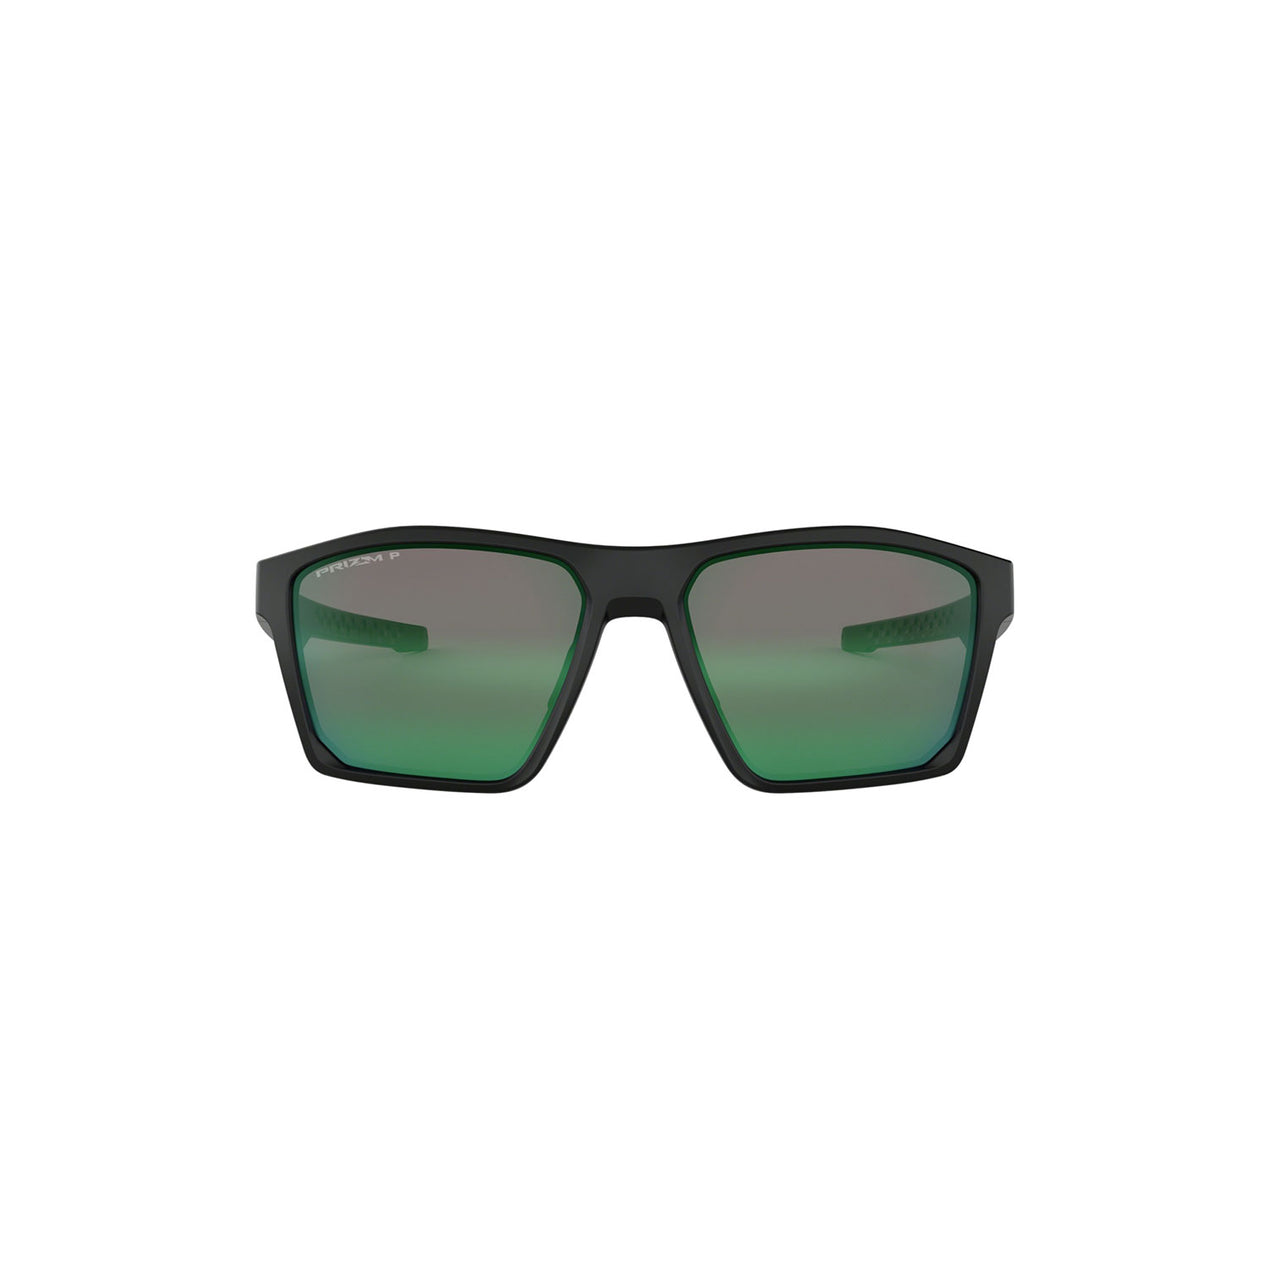 303ce35a21 ... Targetline Matte Black - Prizm Jade Iridium Polarized Lens Sunglasses  thumb ...